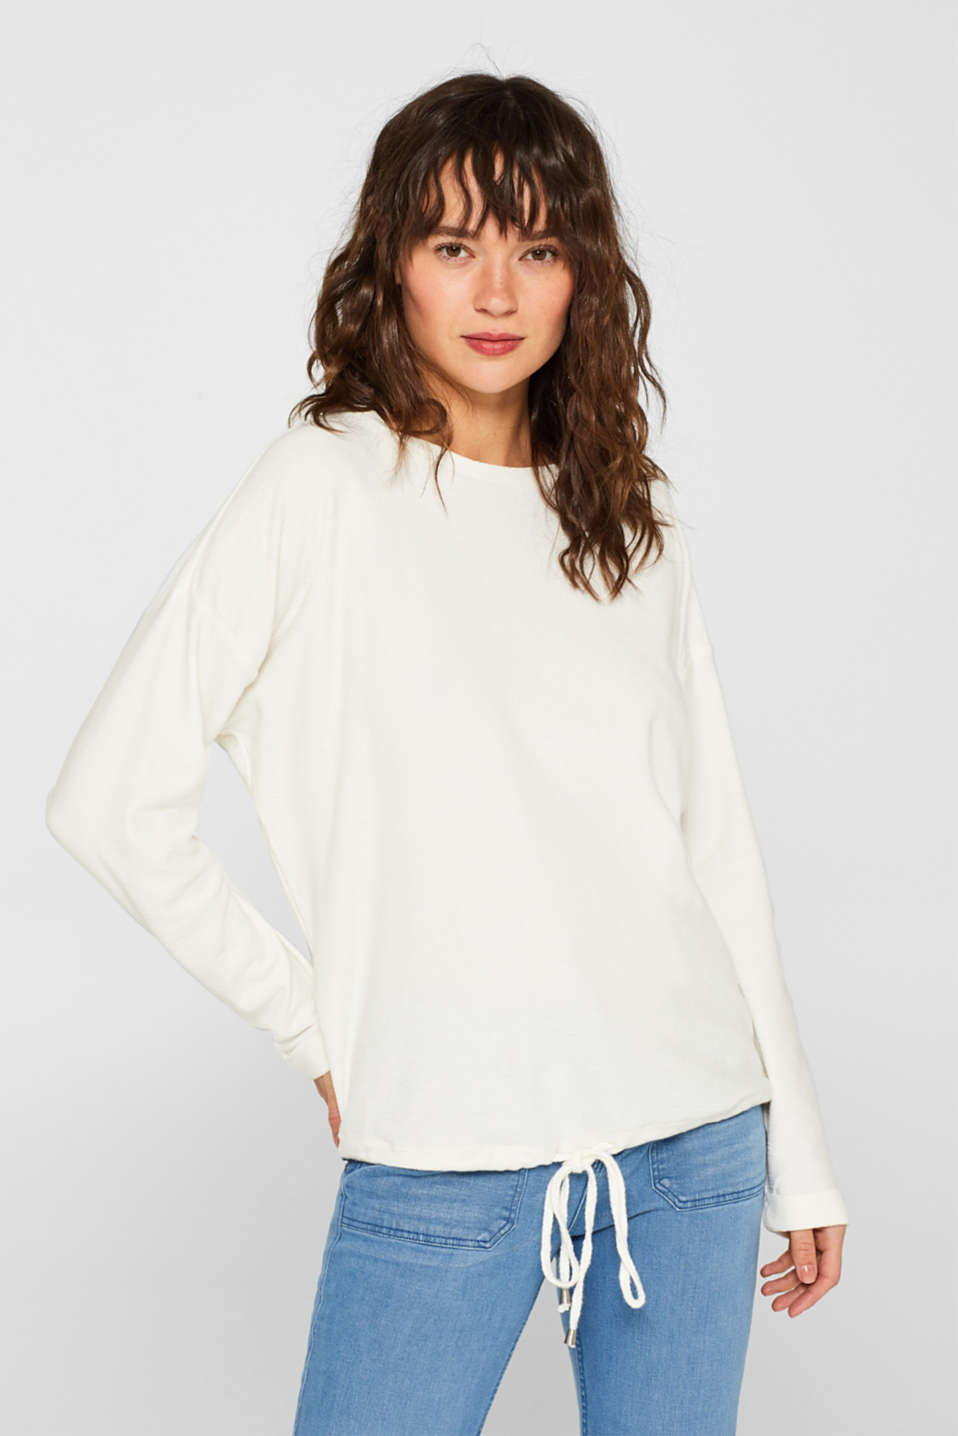 Esprit - Long sleeve top with a drawstring, 100% cotton